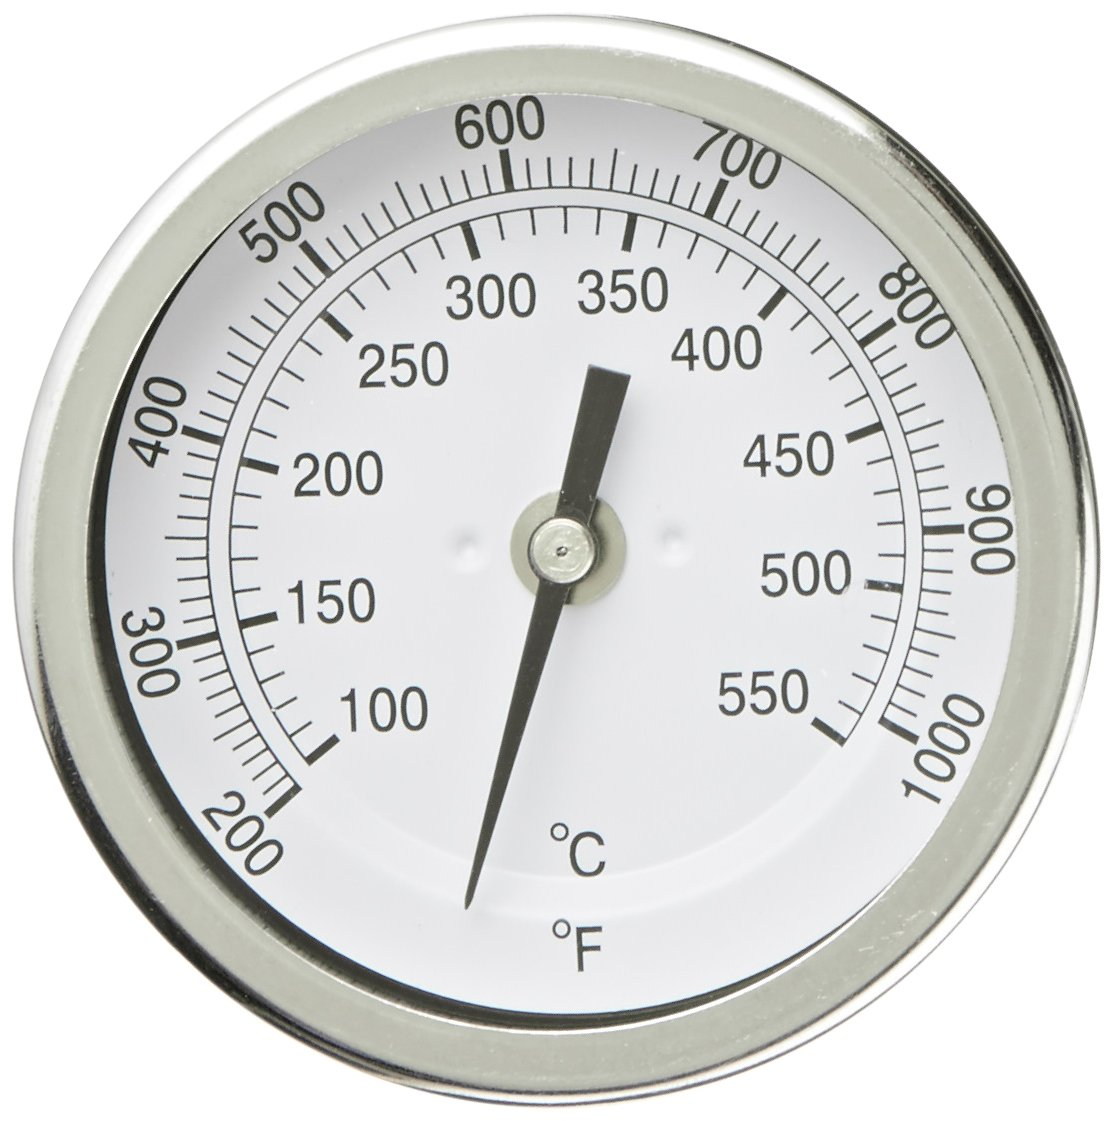 PIC Gauge B3B6-TT 3'' Dial Size, 200/1000°F and 93/538°C, 6'' Stem Length, Back Angle Connection, Stainless Steel Case, 316 Stainless Steel Stem Bimetal Thermometer by PIC Gauges